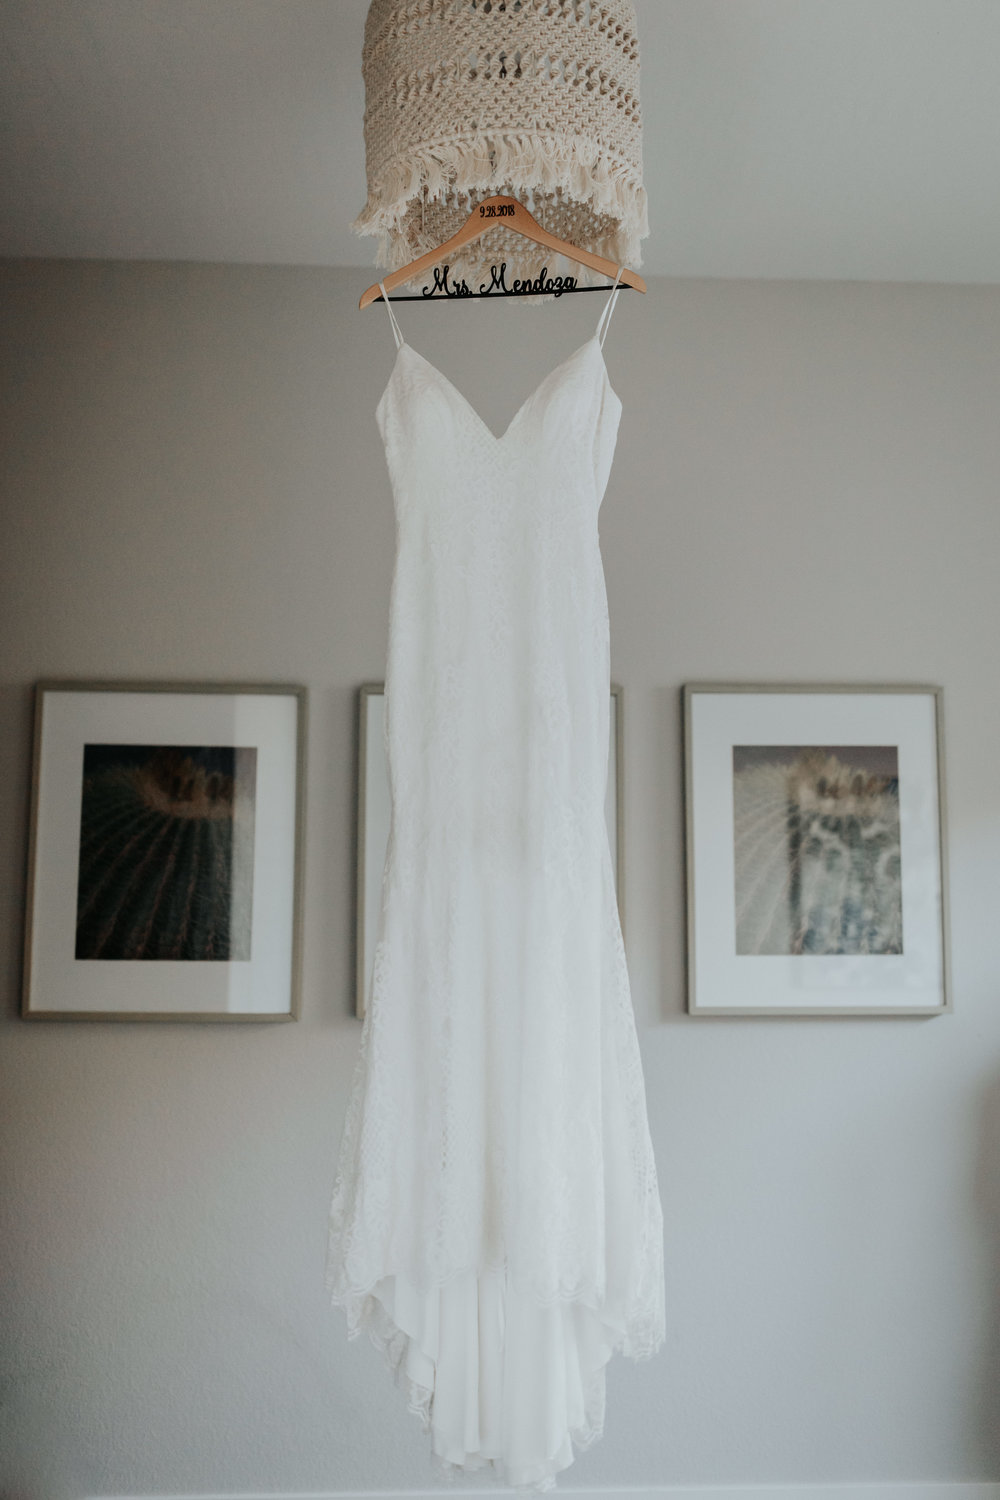 Rustic Bloom Photography | Wedding Dress Inspiration  | Oregon coast Photographer